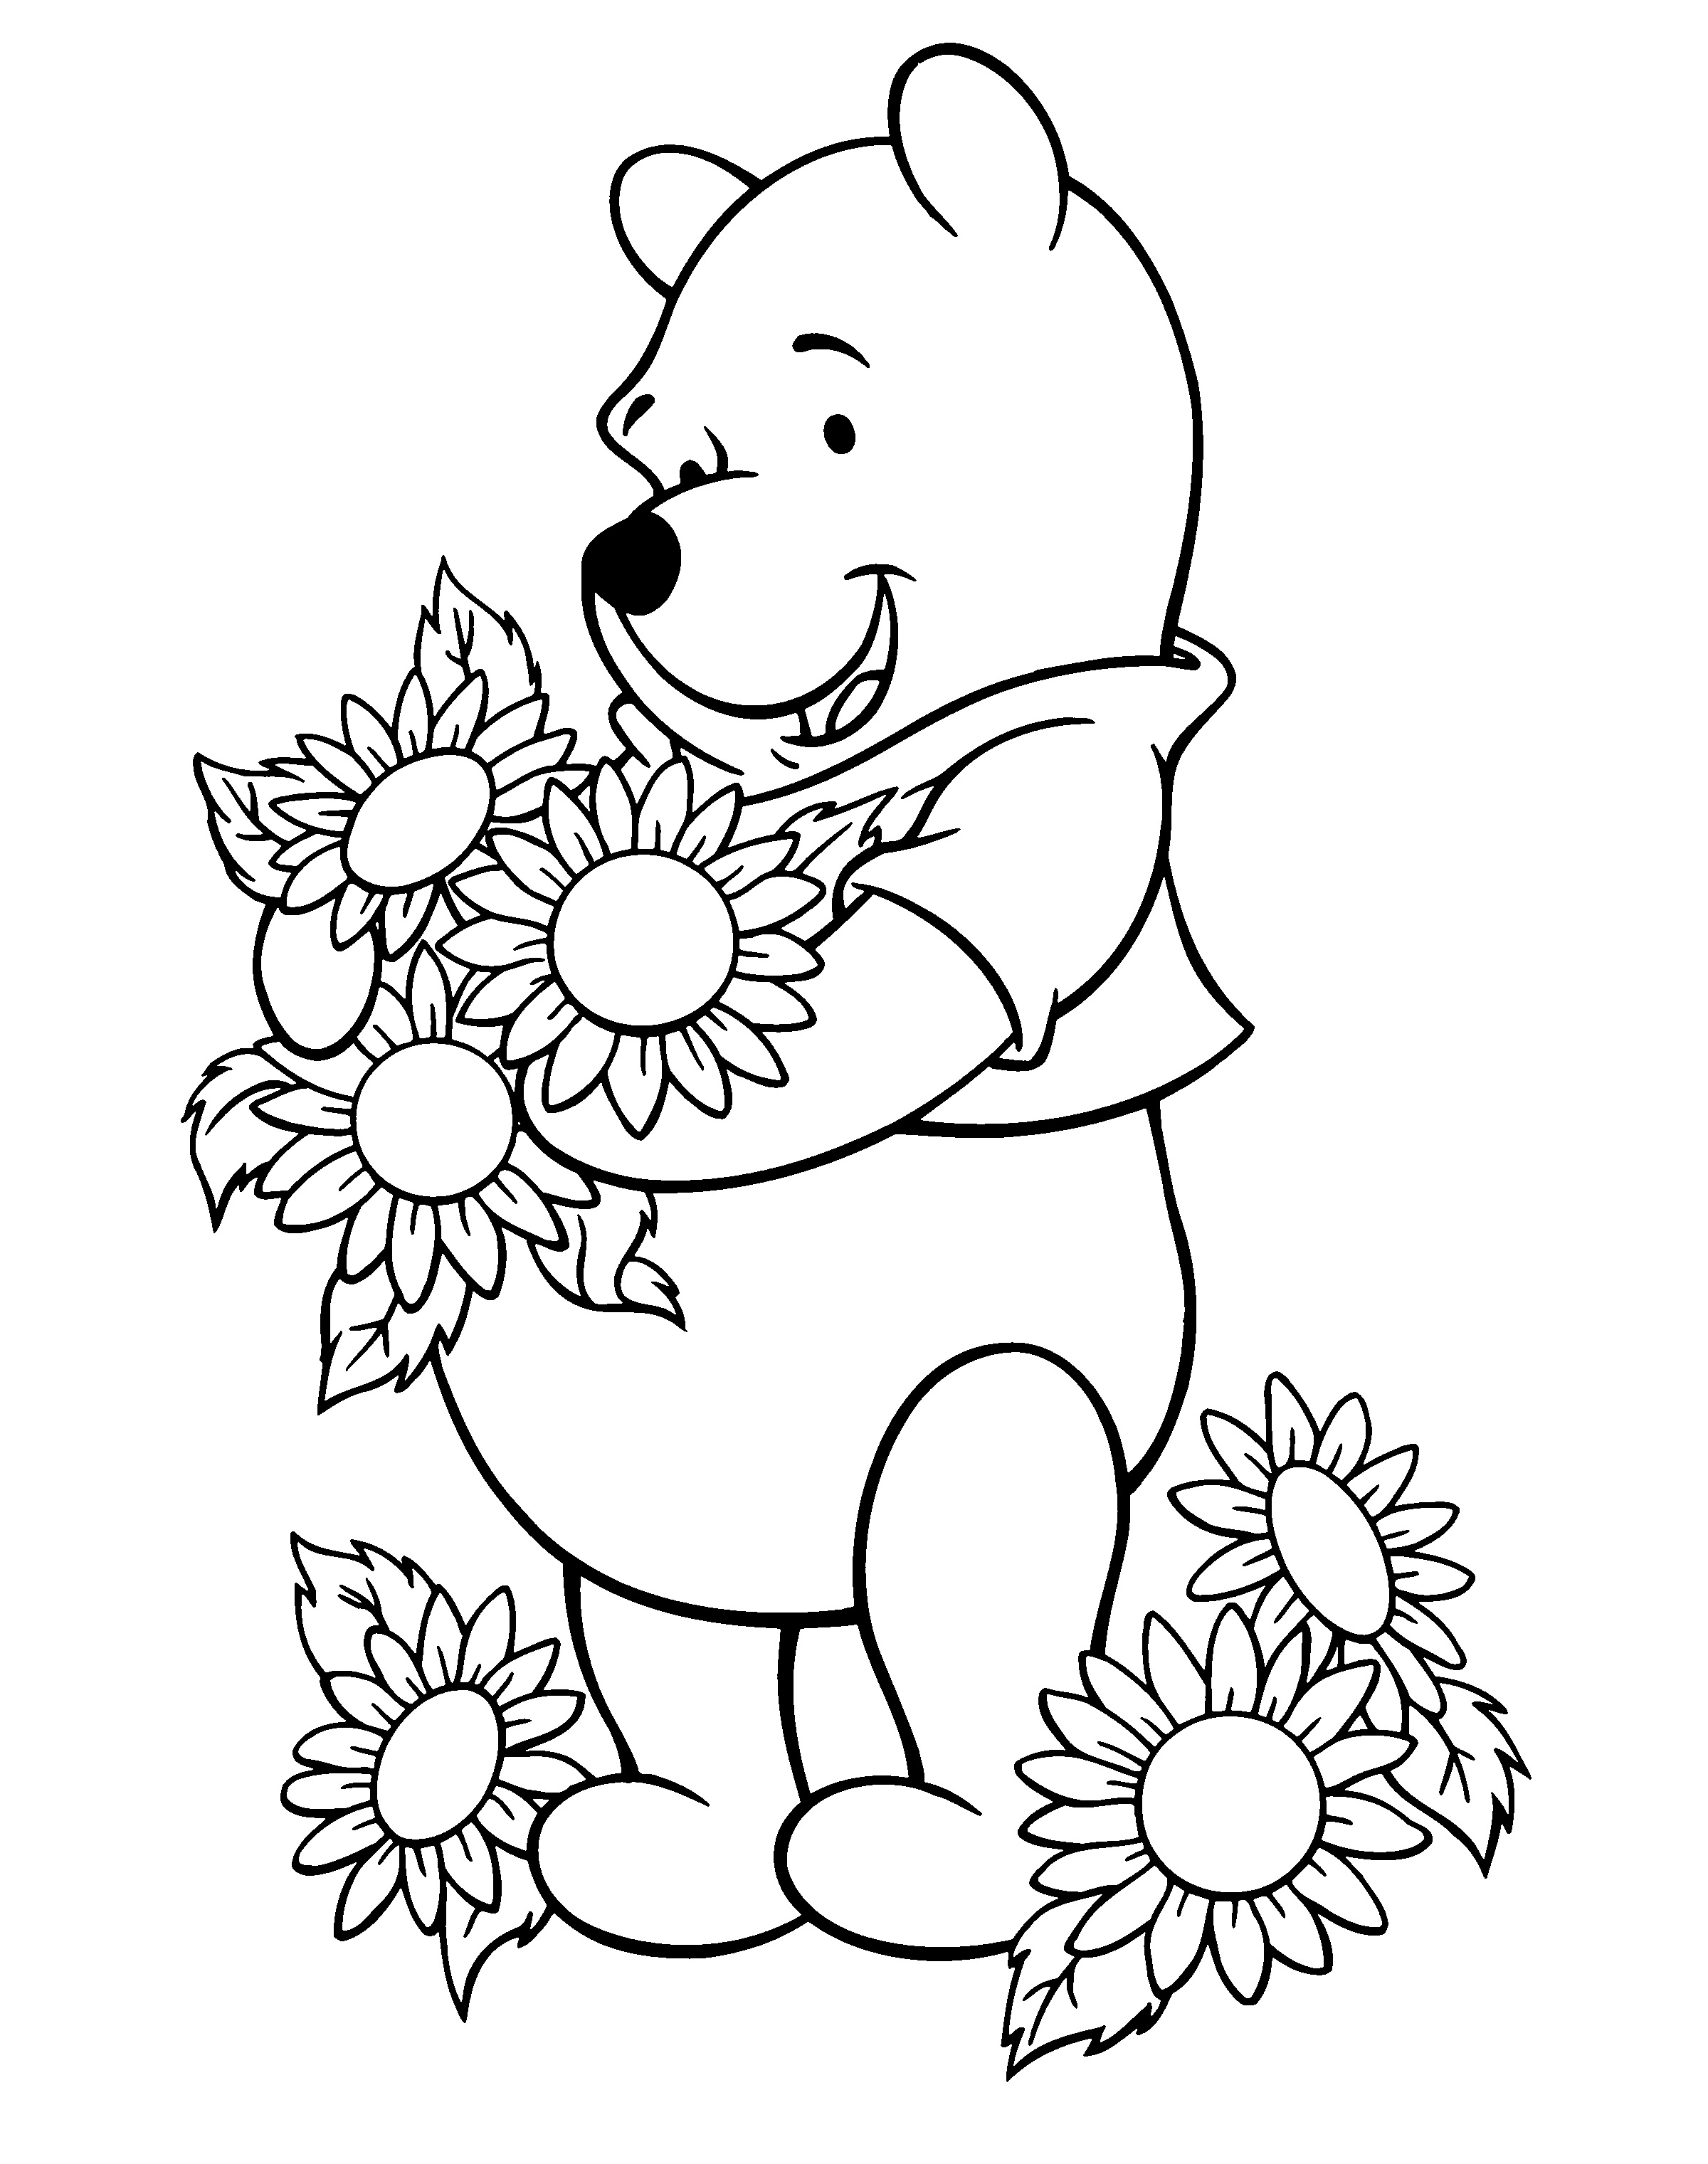 Sunflower Coloring Pages For Kids at GetDrawings.com | Free ...